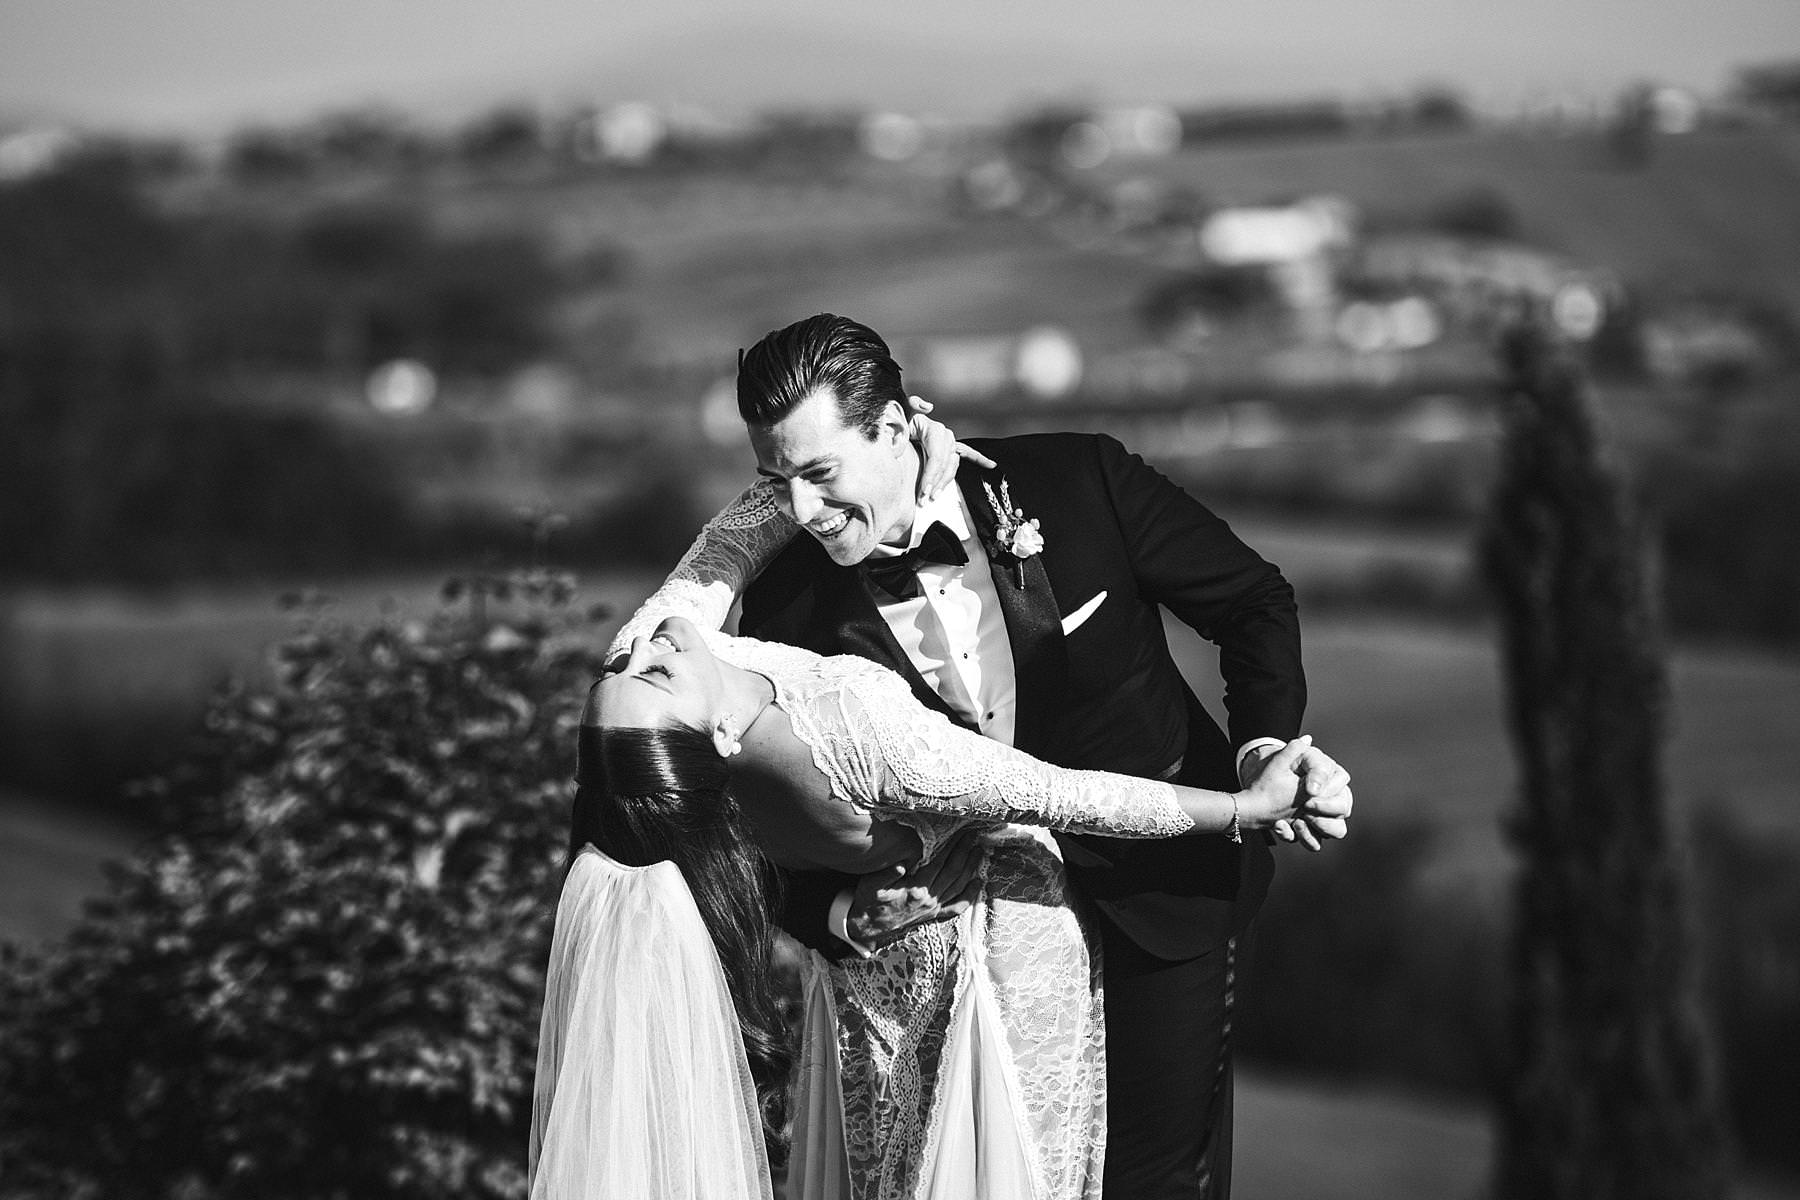 Destination wedding at Villa l'Antica Posta, elegance and fun in a nutshell. Exciting and genuine wedding portrait in the amazing landscape of Umbria